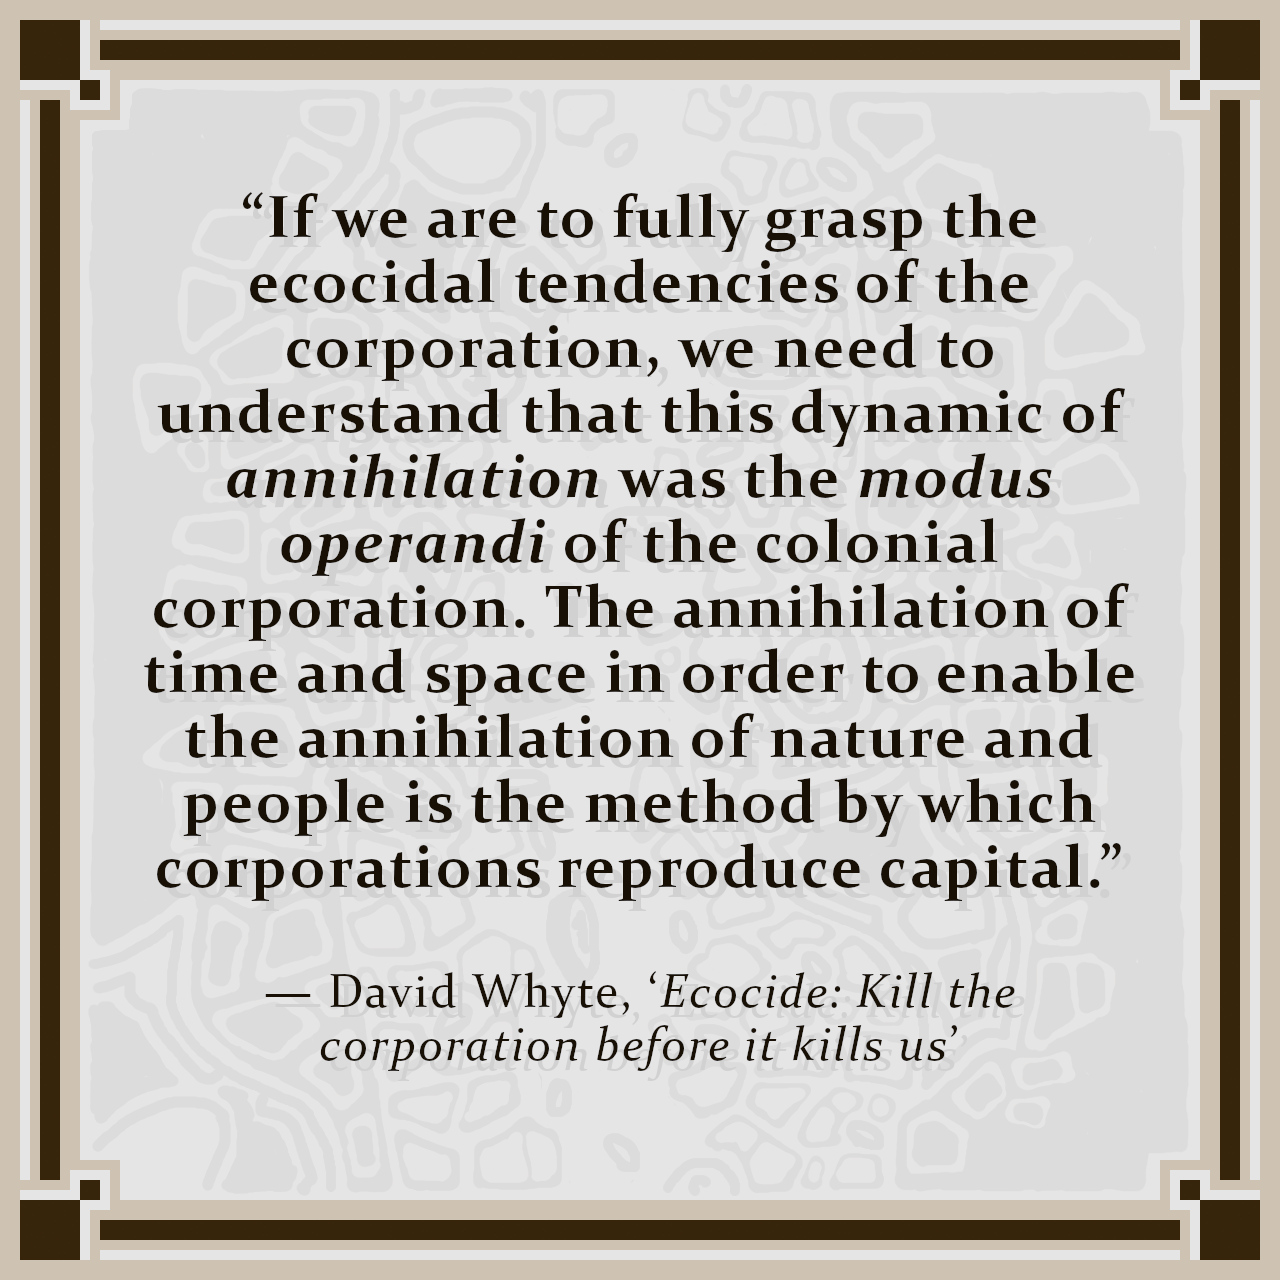 """""""If we are to fully grasp the ecocidal tendencies of the corporation, we need to understand that this dynamic of annihilation was the modus operandi of the colonial corporation. The annihilation of time and space in order to enable the annihilation of nature and people is the method by which corporations reproduce capital."""" — David Whyte, 'Ecocide: Kill the corporation before it kills us'"""